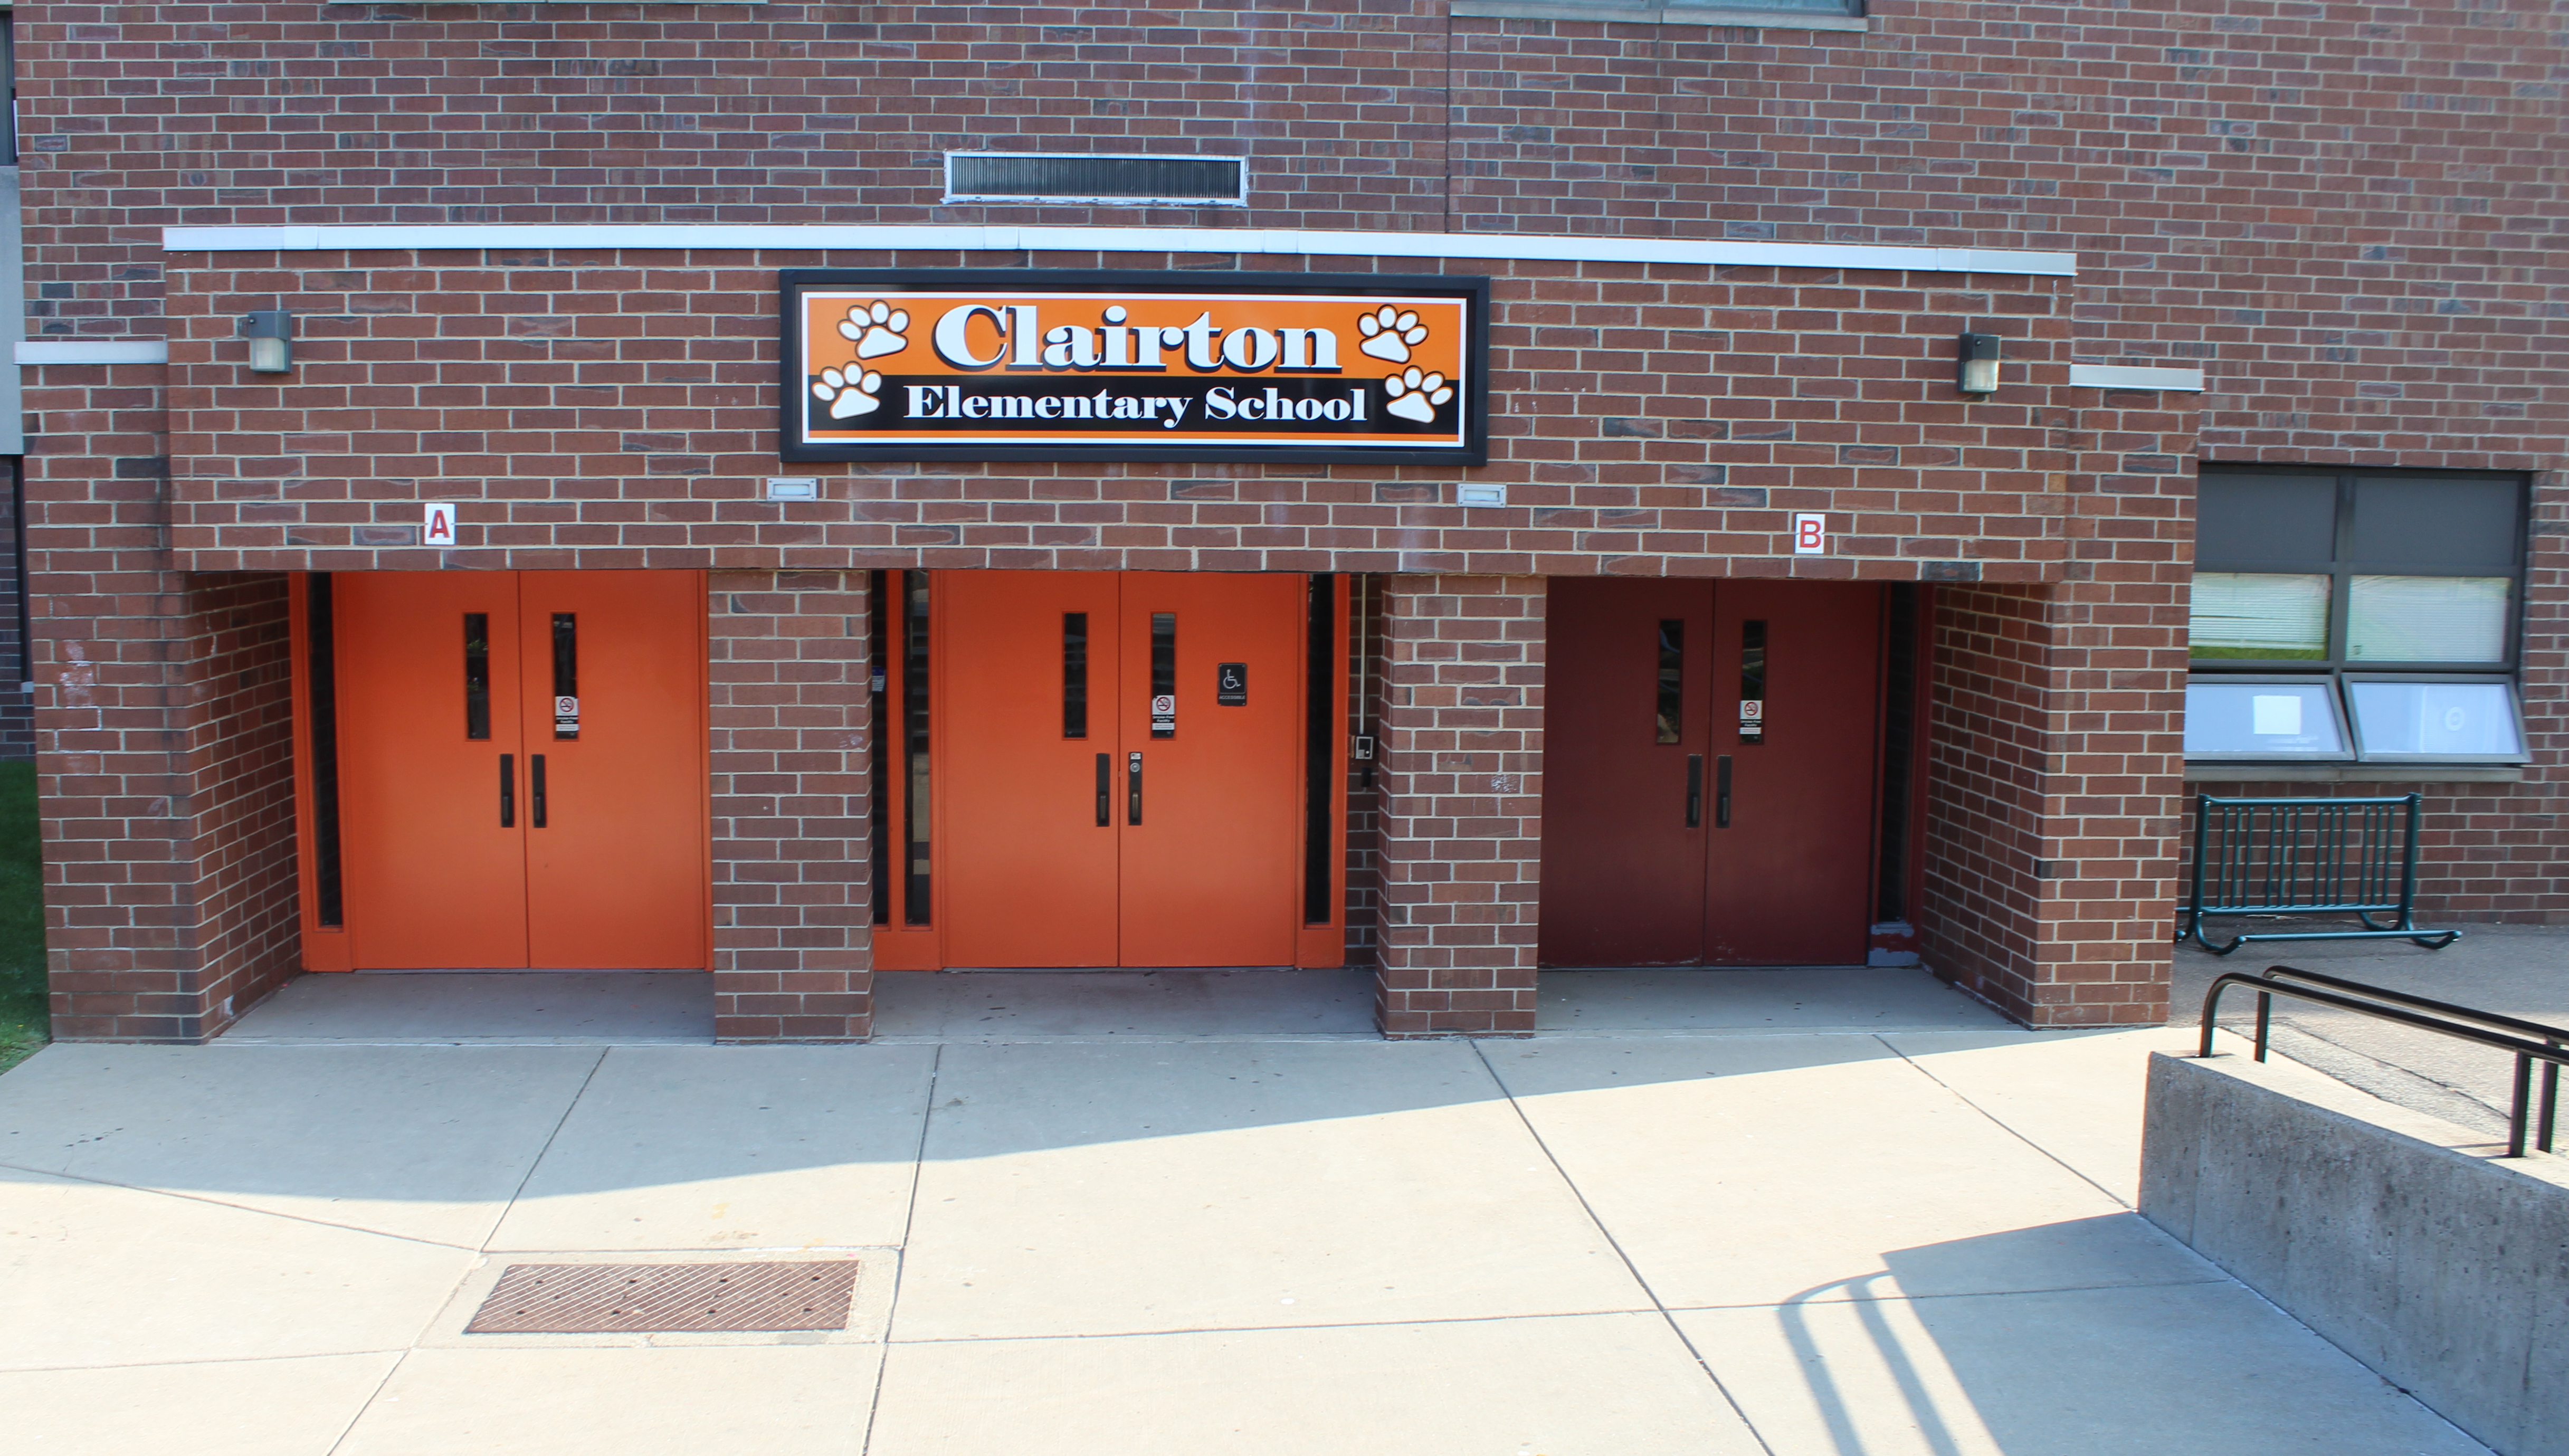 Clairton Elementary School Entrance